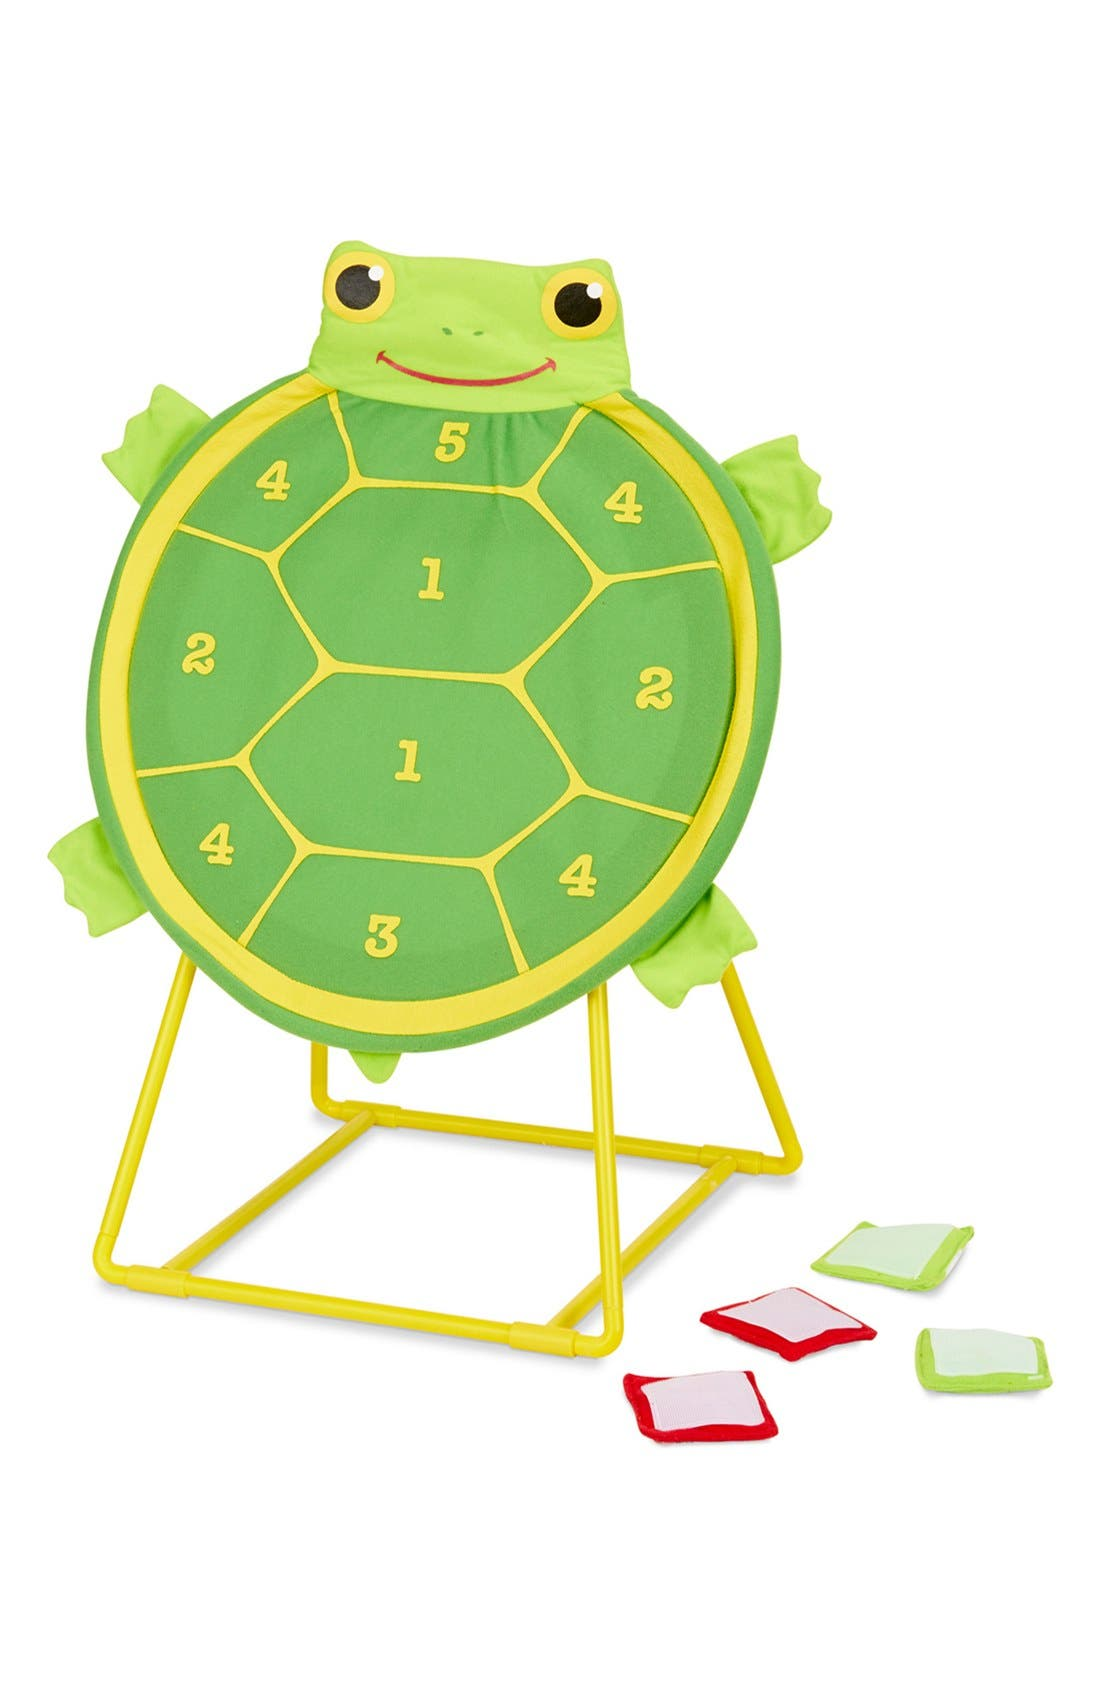 'Tootle Turtle' Target Game,                             Alternate thumbnail 2, color,                             GREEN